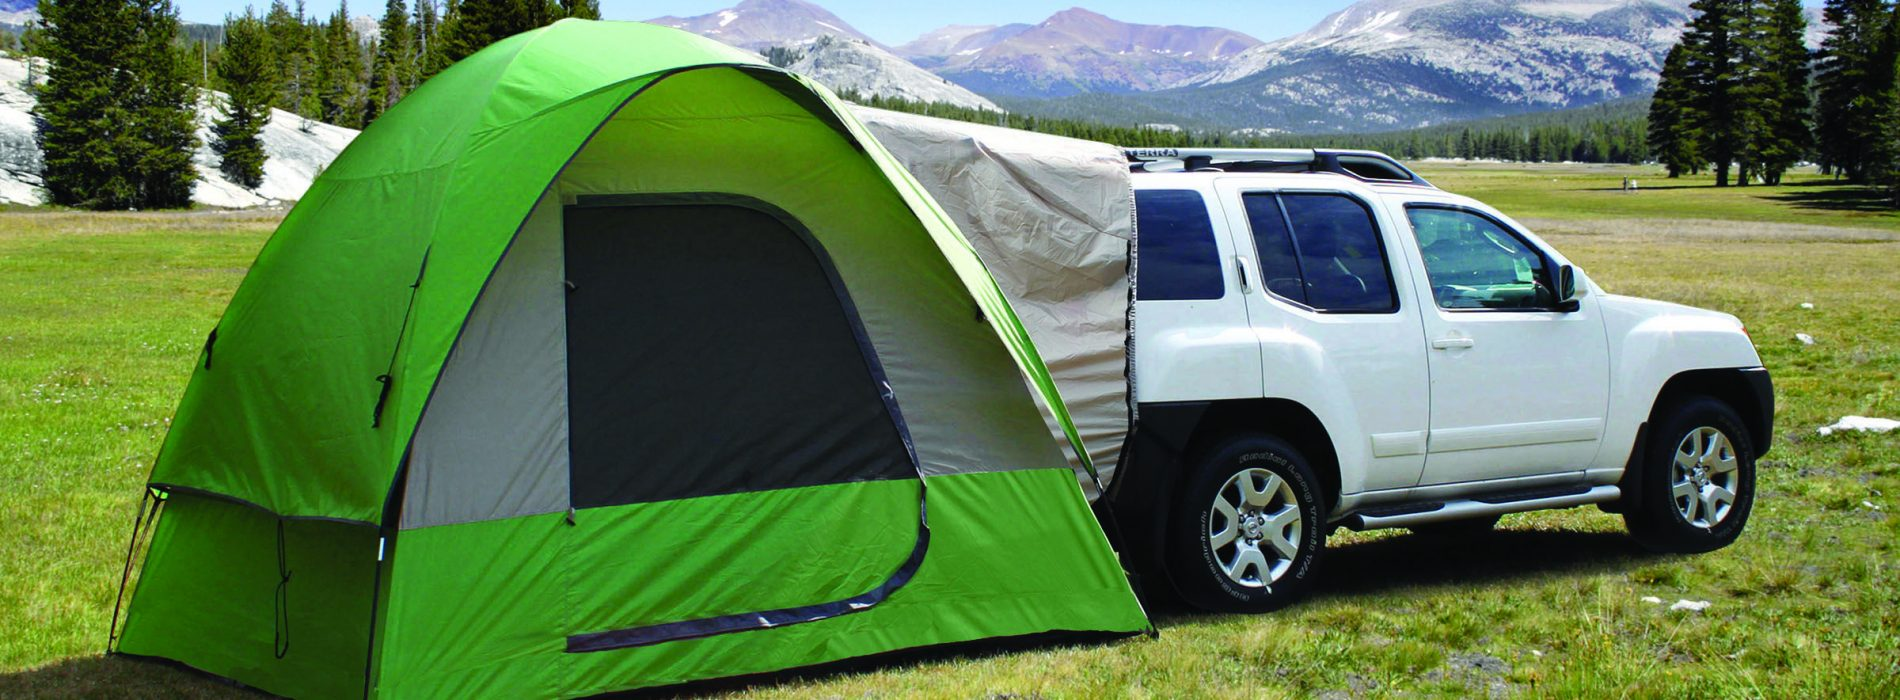 Factors to Consider Prior to Purchasing Vehicle Camping Tents